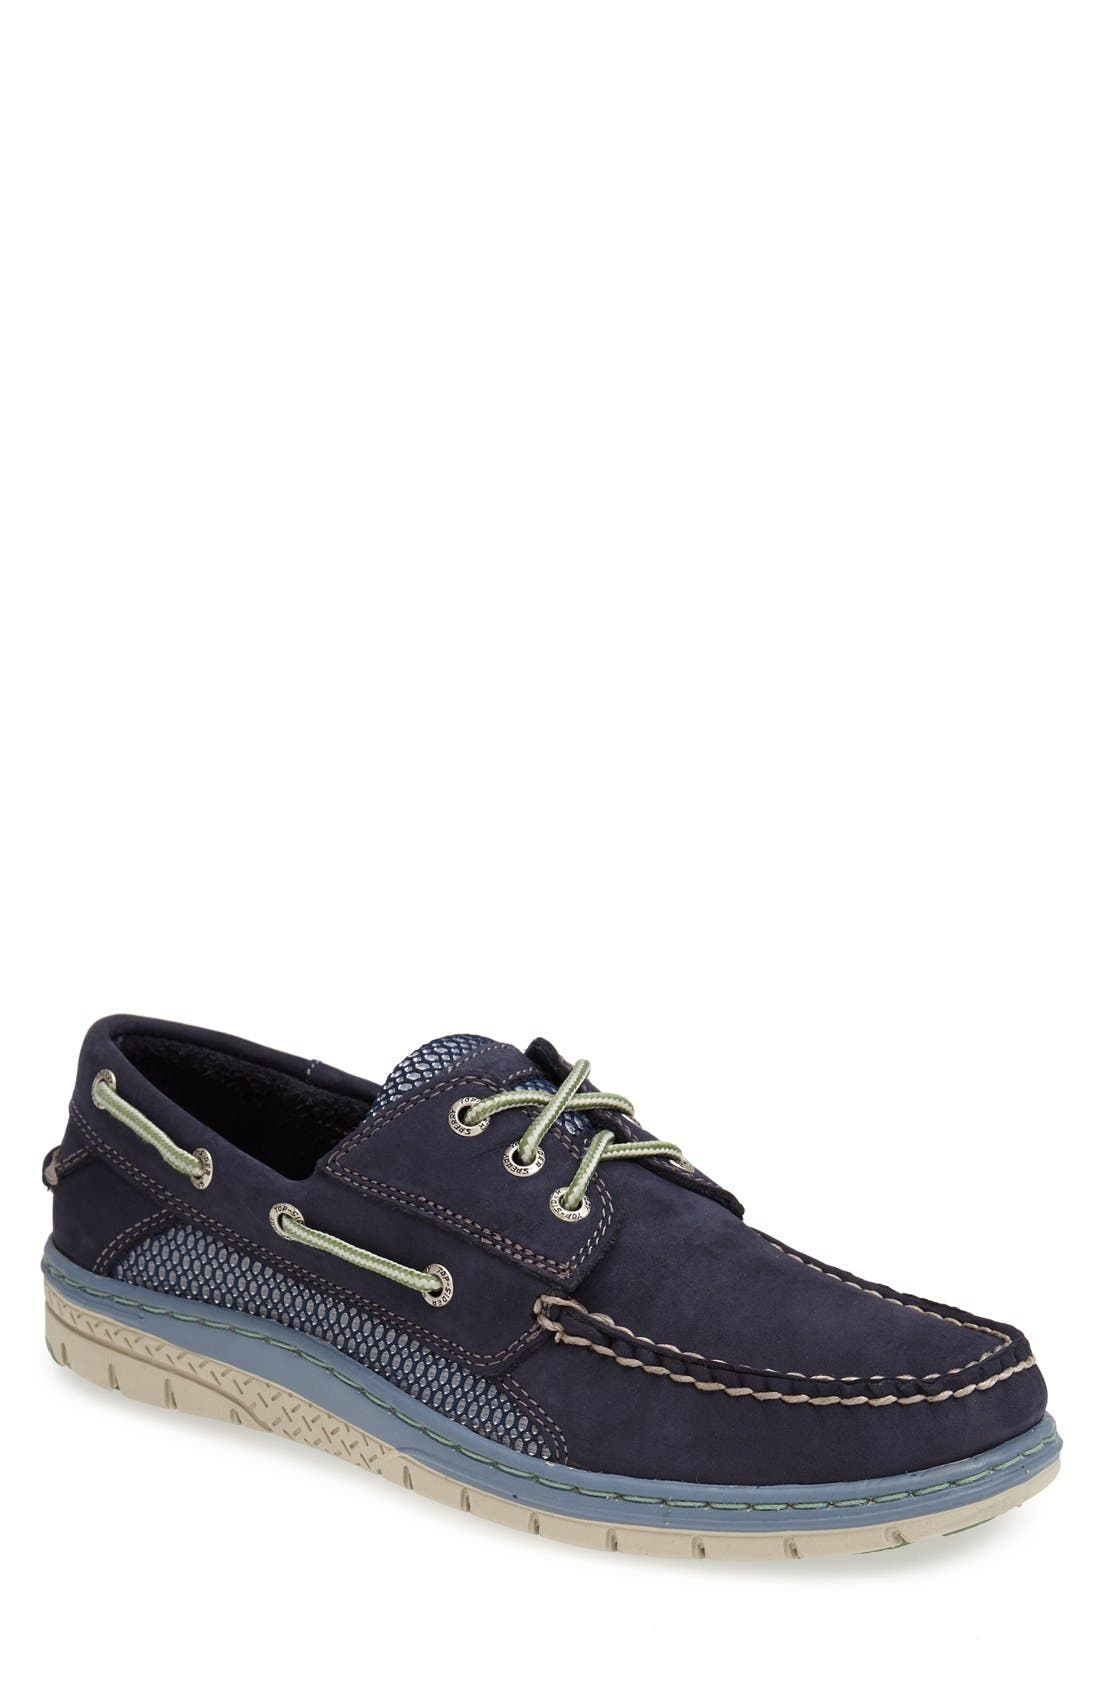 Main Image - Sperry 'Billfish Ultralite' Boat Shoe (Men)